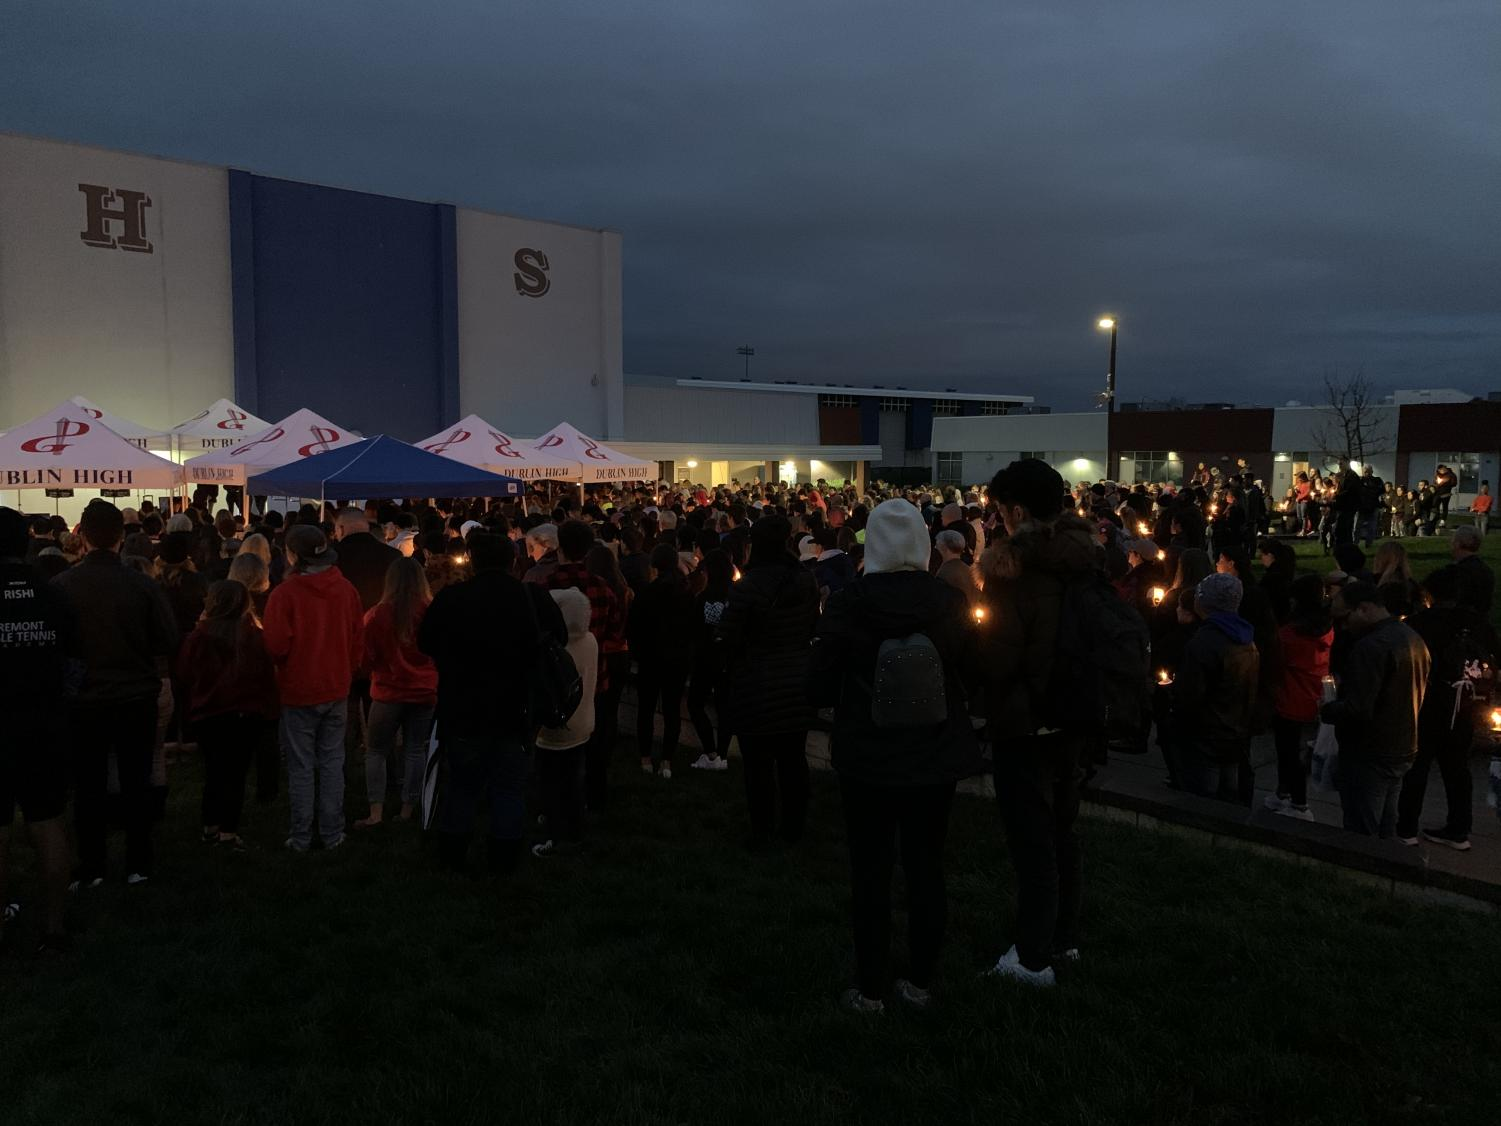 Hundreds of Dublin residents gather at a candlelight vigil in the DHS quad to mourn the loss of these beloved students and provide support to the families.